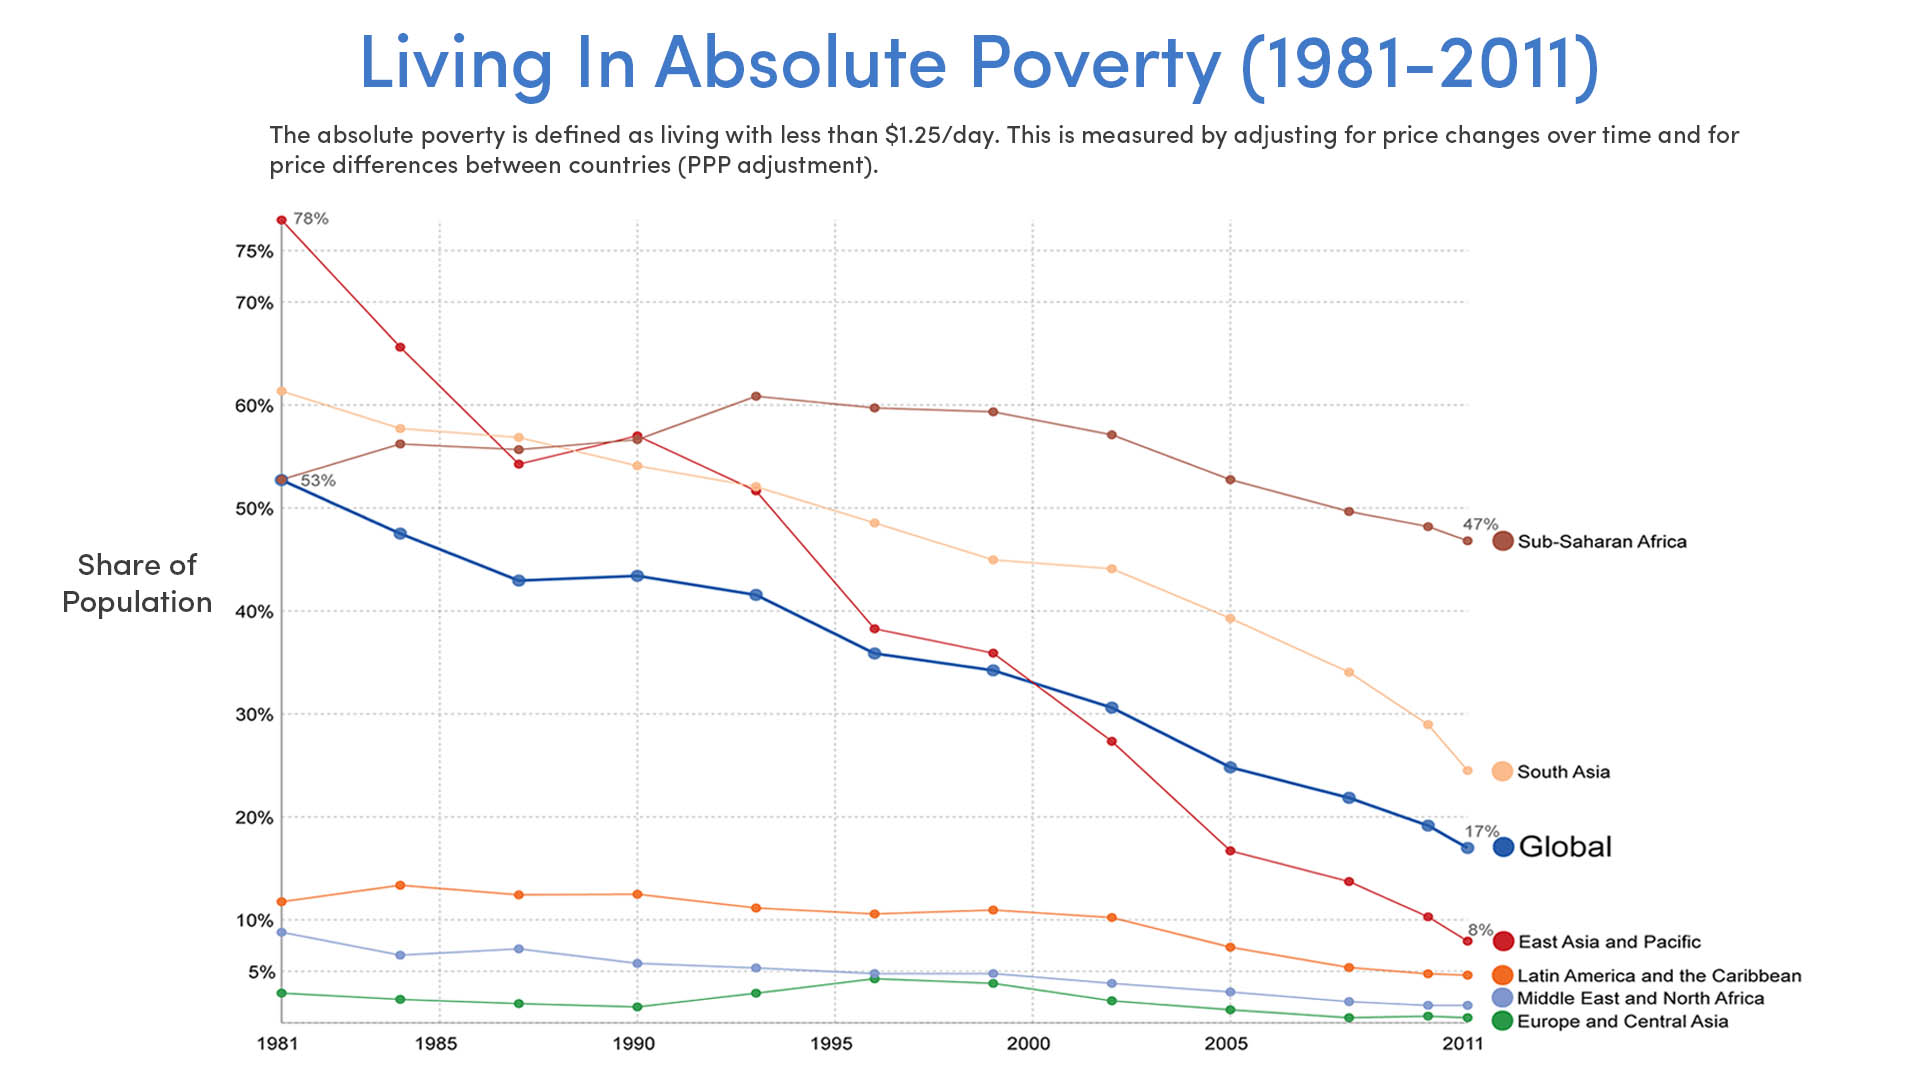 Declining Rates Of Absolute Poverty